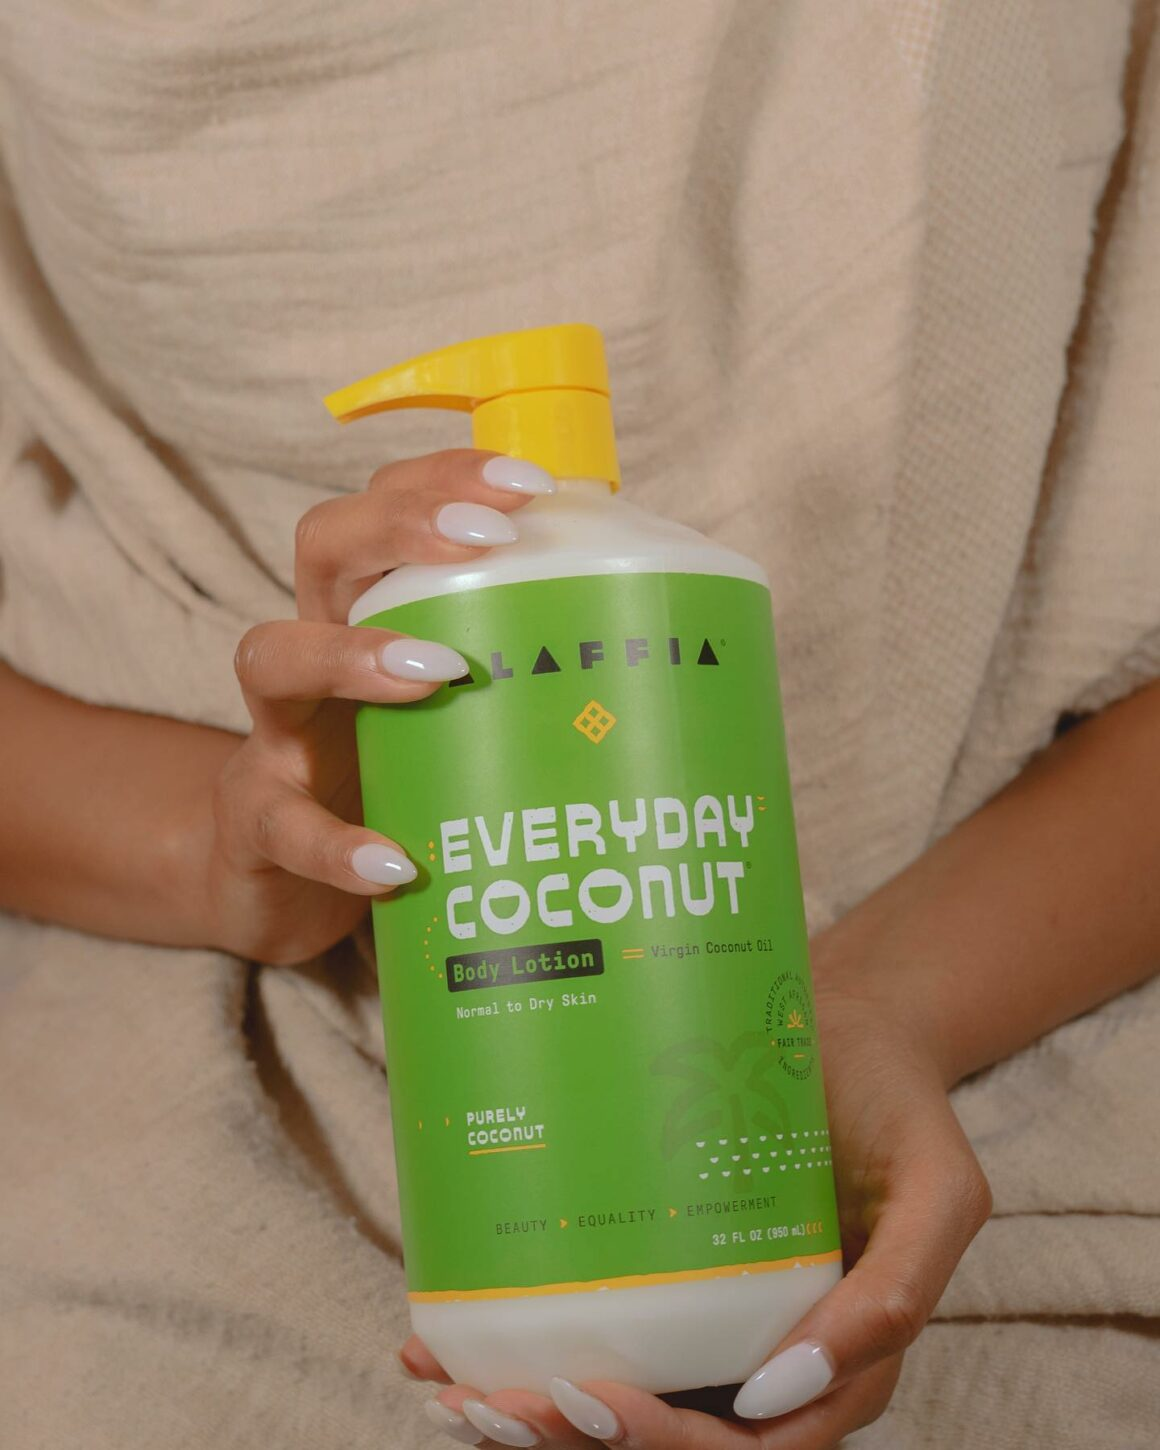 The Best All-Natural Body Washes - Alaffia Everyday Coconut Body Wash – Purely Coconut